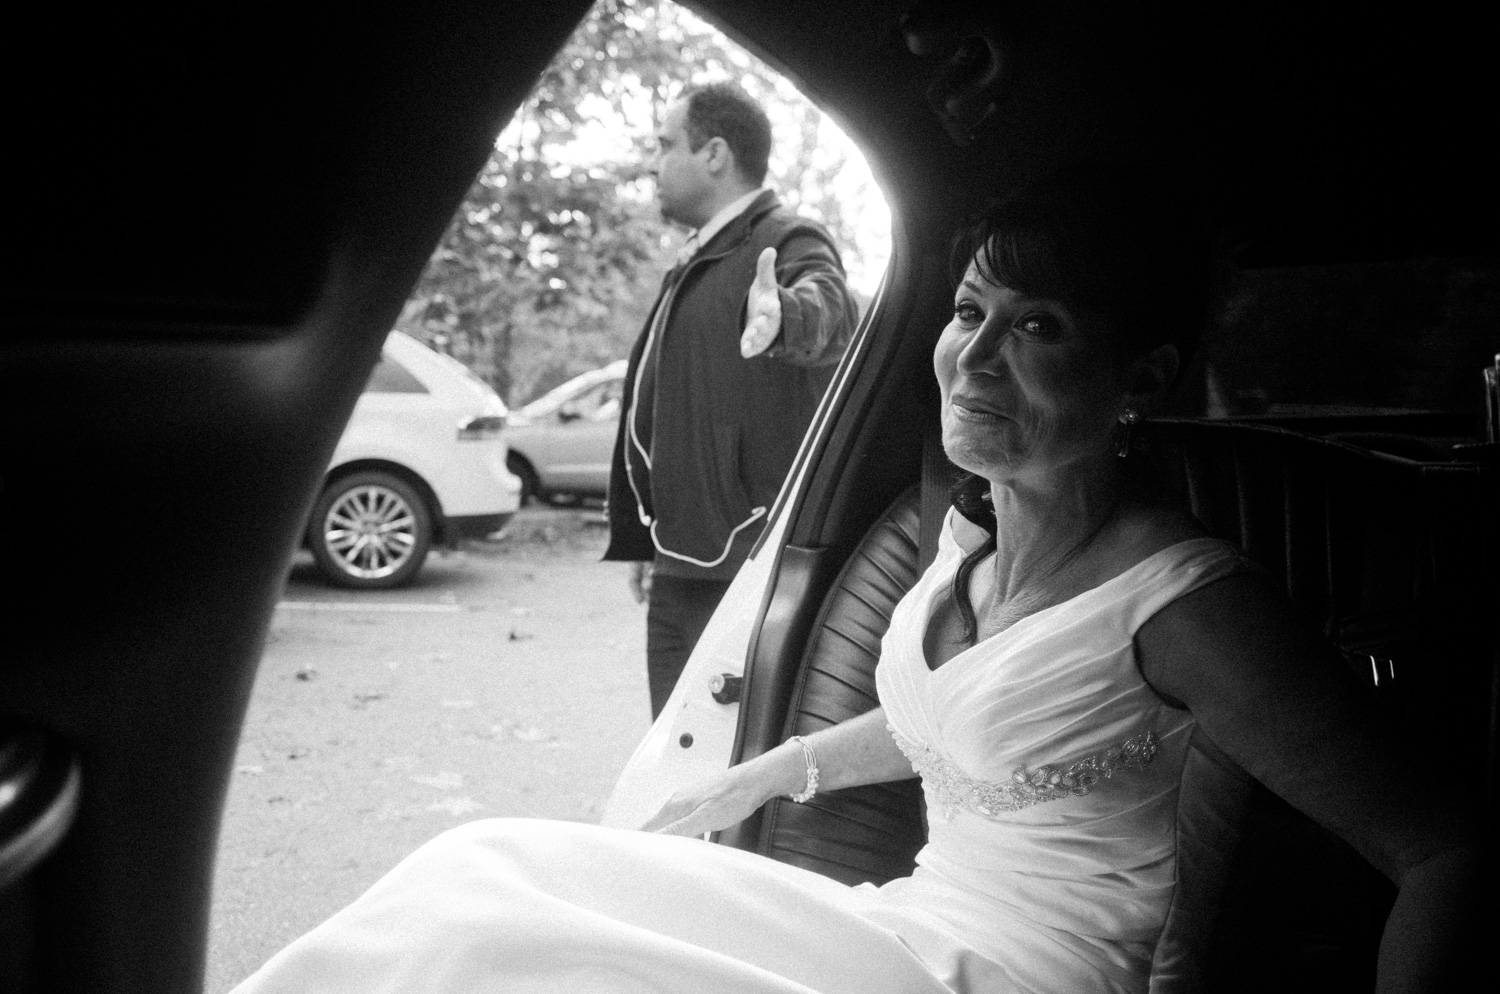 As the bride was getting out of the limousine, I saw this moment come together very quickly. I took two quick frames and this was the better of the two compositionally and also the expression of the bride. She was looking just behind me to the bridesmaids.